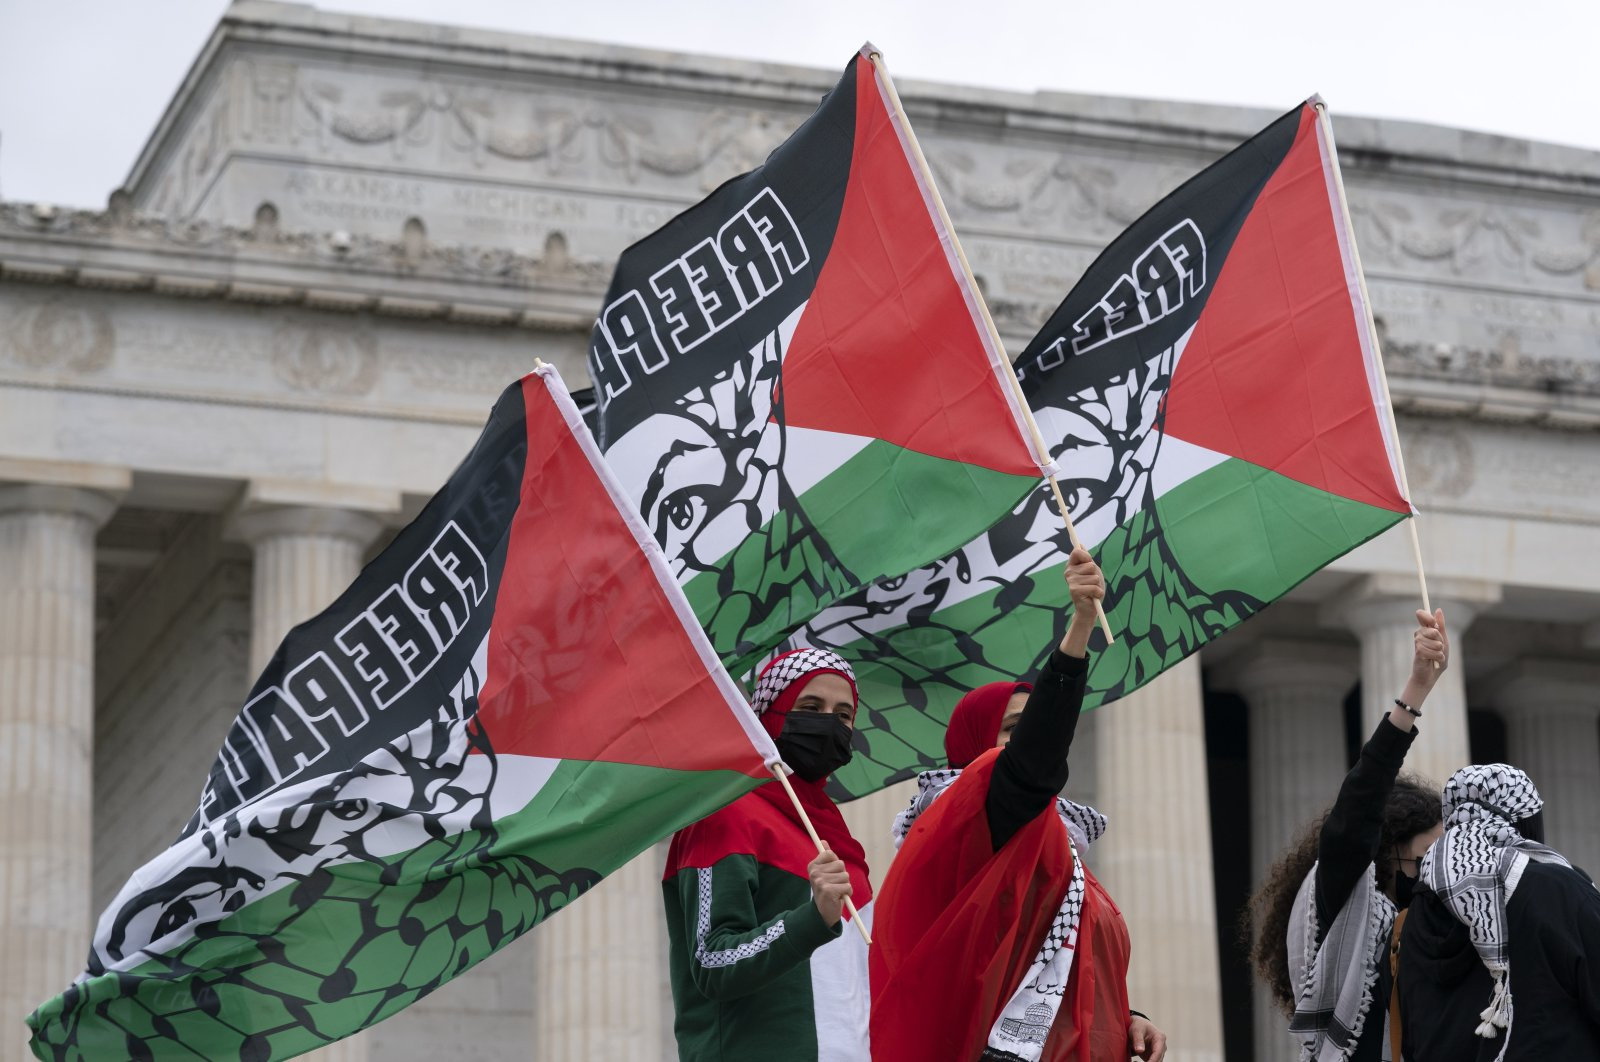 """Supporters of the Palestinians rally during the """"National March for Palestine"""" demonstration at Lincoln Memorial, Washington, D.C., the U.S., Saturday, May 29. 2021. (AP Photo / Jose Luis Magana)"""